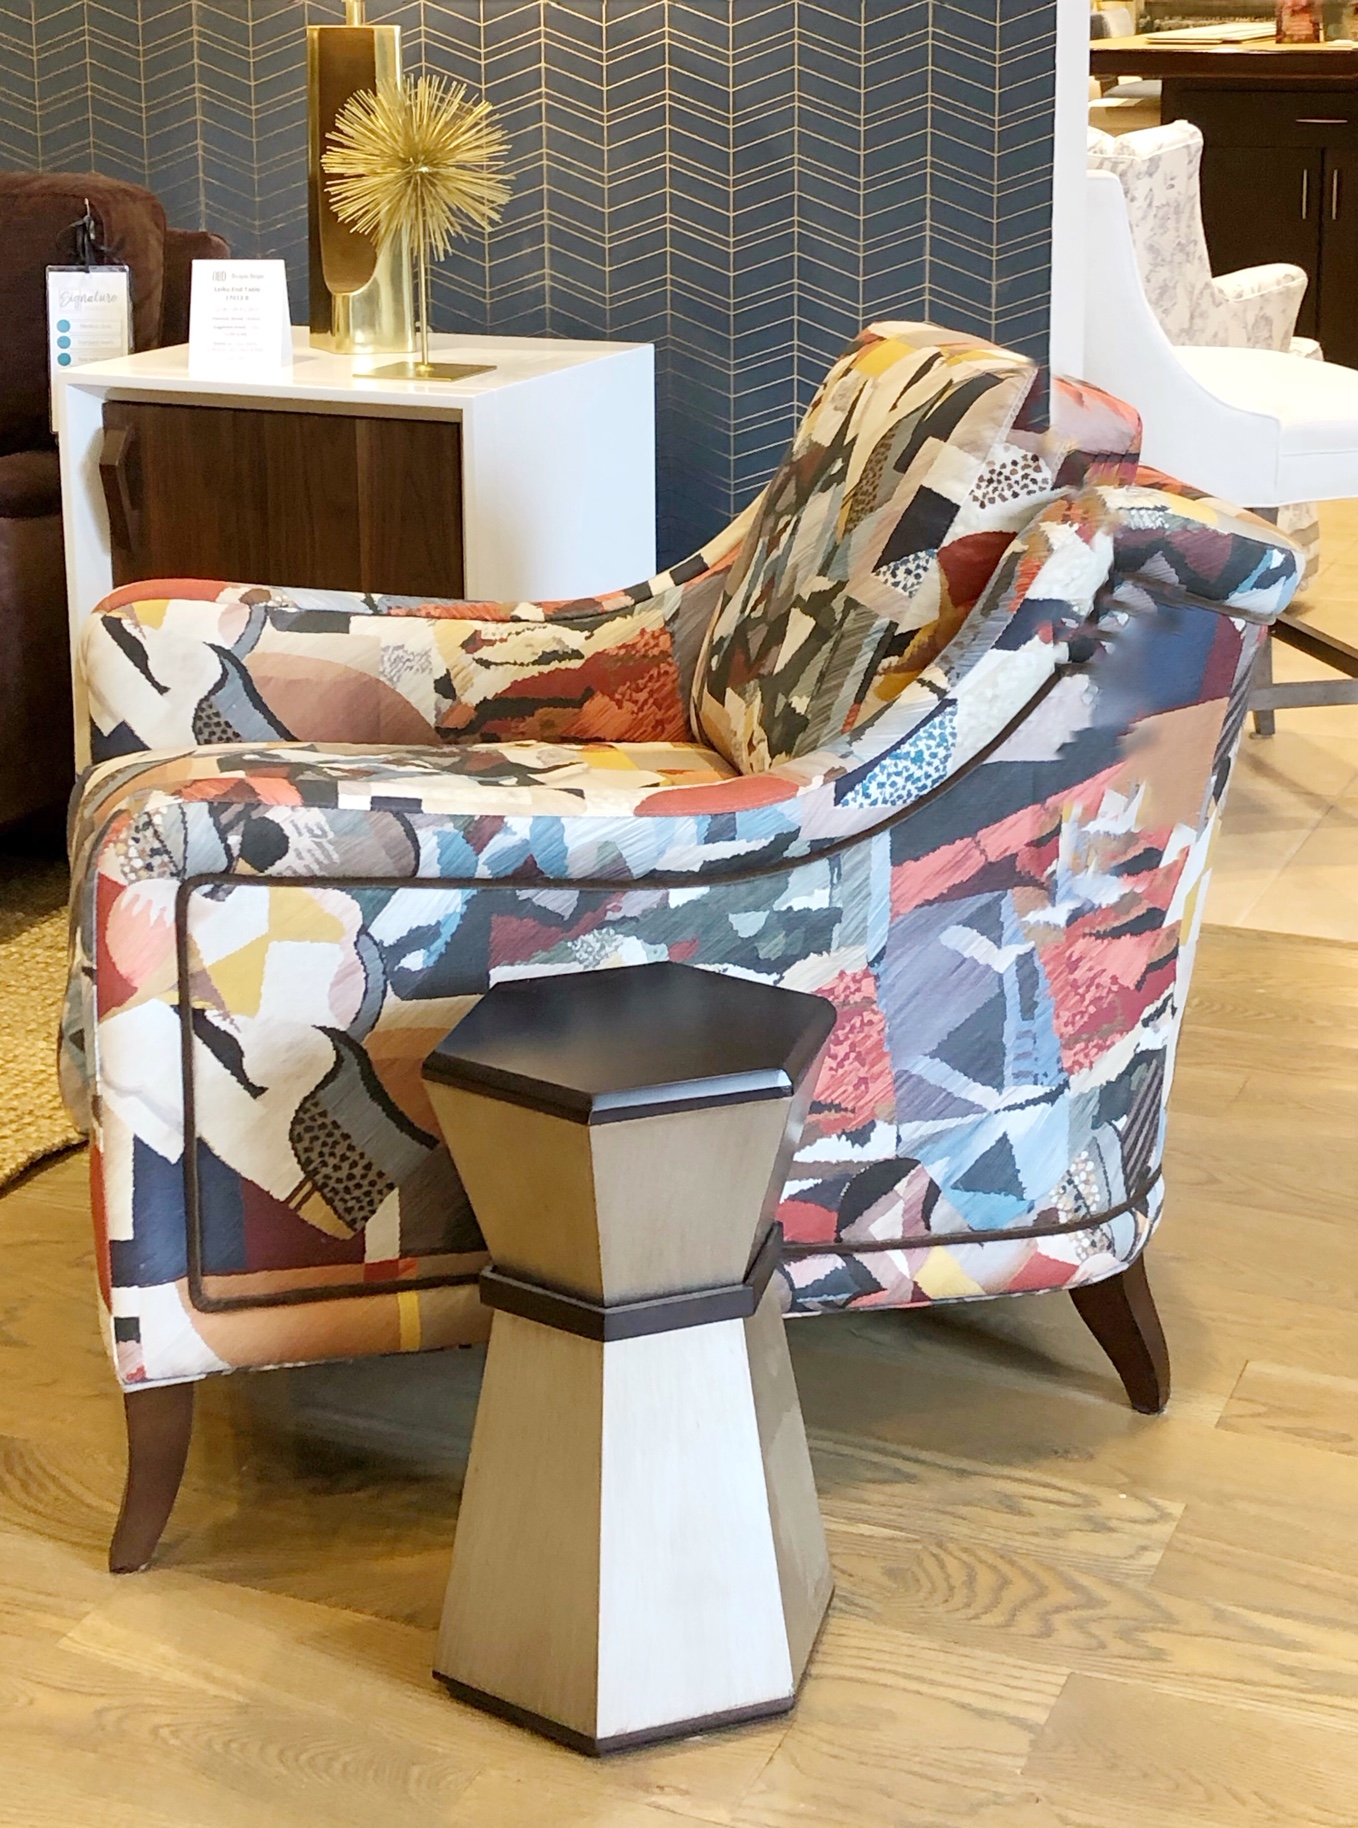 Design trend patterned fabric on chair